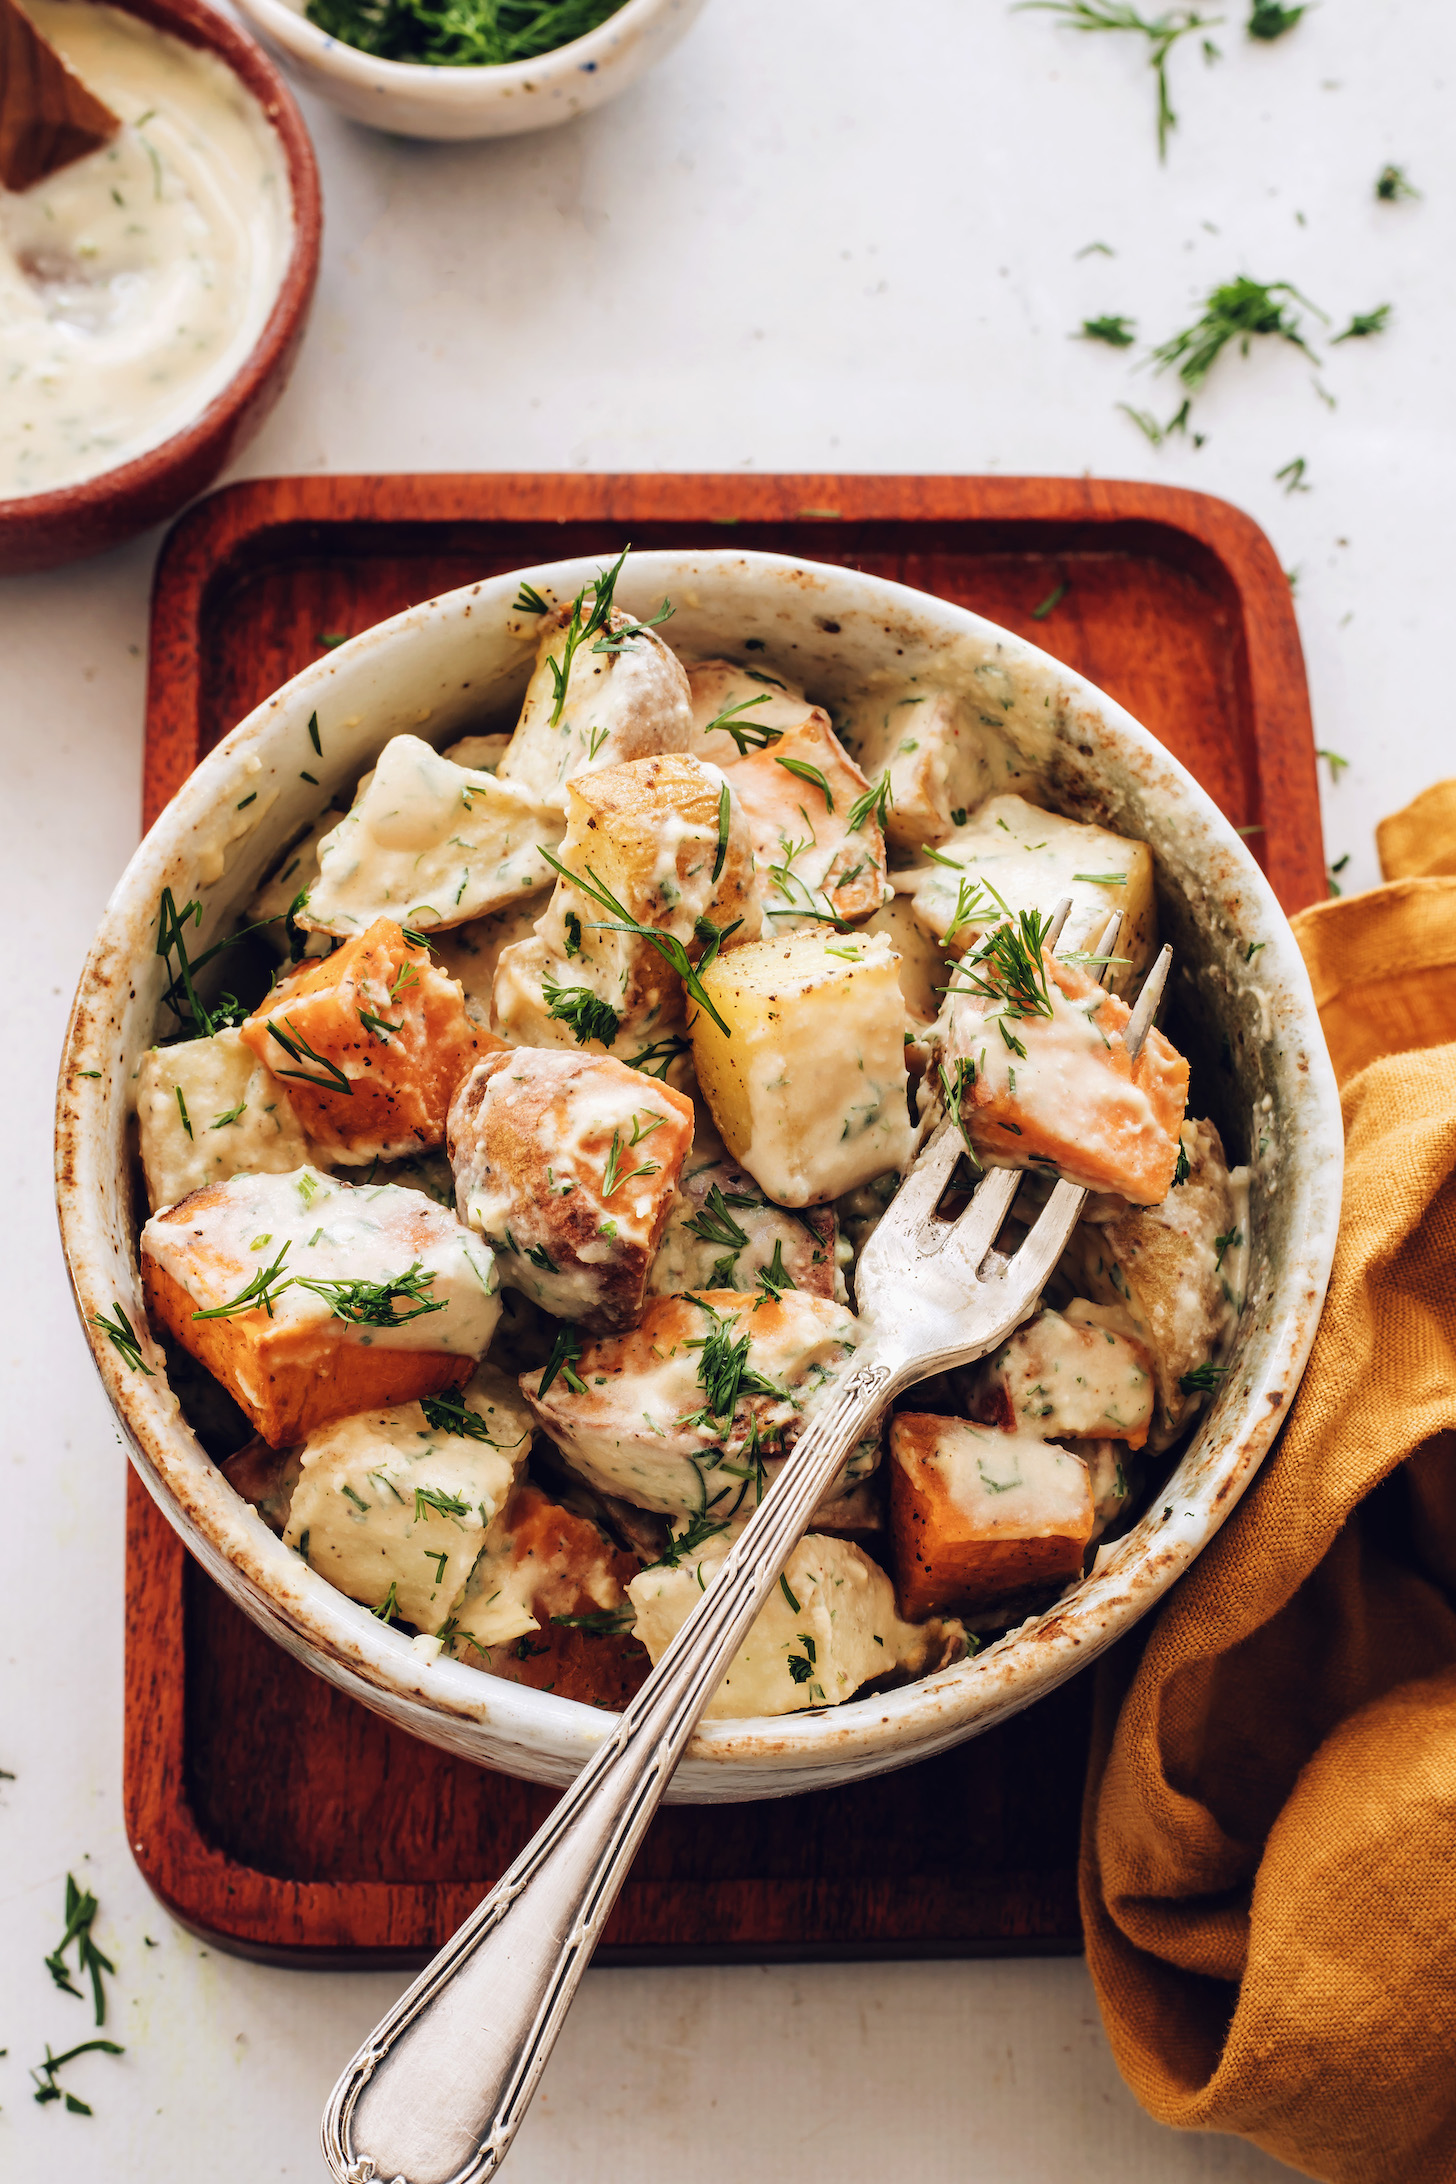 Fork in a bowl of roasted potato salad sprinkled with fresh dill